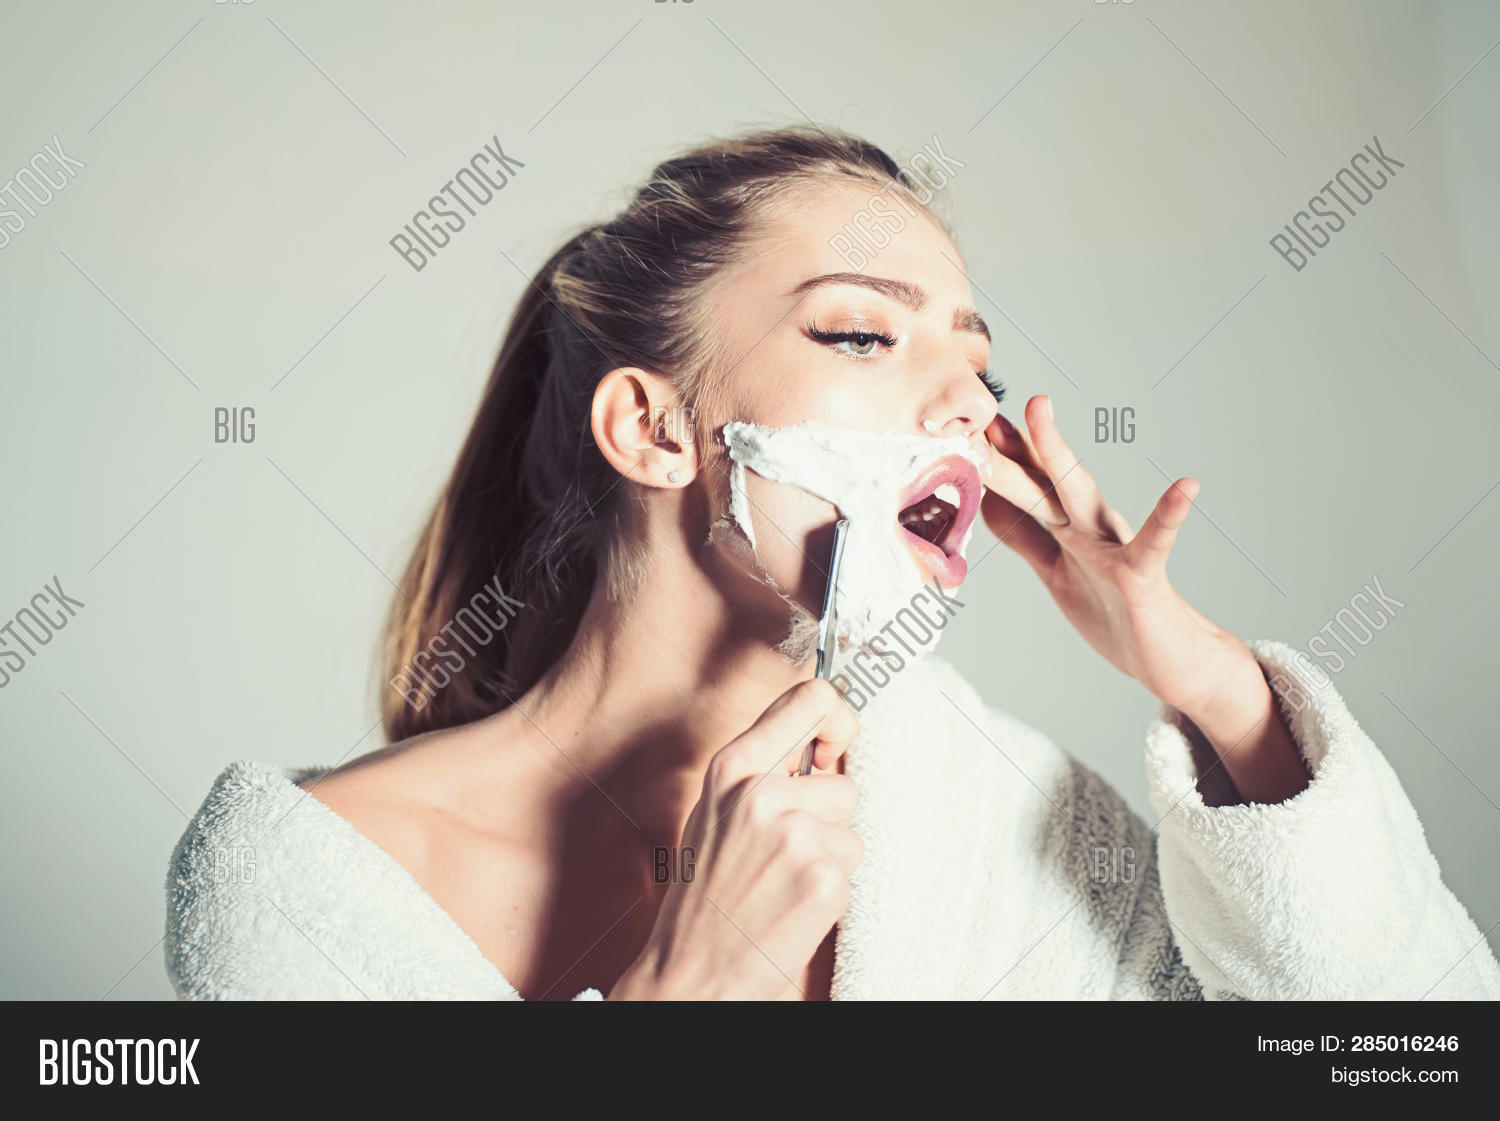 adorable,adult,attractive,background,barber,bathrobe,beautiful,beauty,blade,busy,concentrated,concept,covered,cute,danger,dangerous,face,foam,girl,gorgeous,grey,hair,hairdresser,hand,hold,industry,lady,lip,long,makeup,metallic,metallized,play,pretty,razor,salon,sensual,sexi,sexy,shampoo,sharp,shave,smooth,steel,straight,wear,woman,young